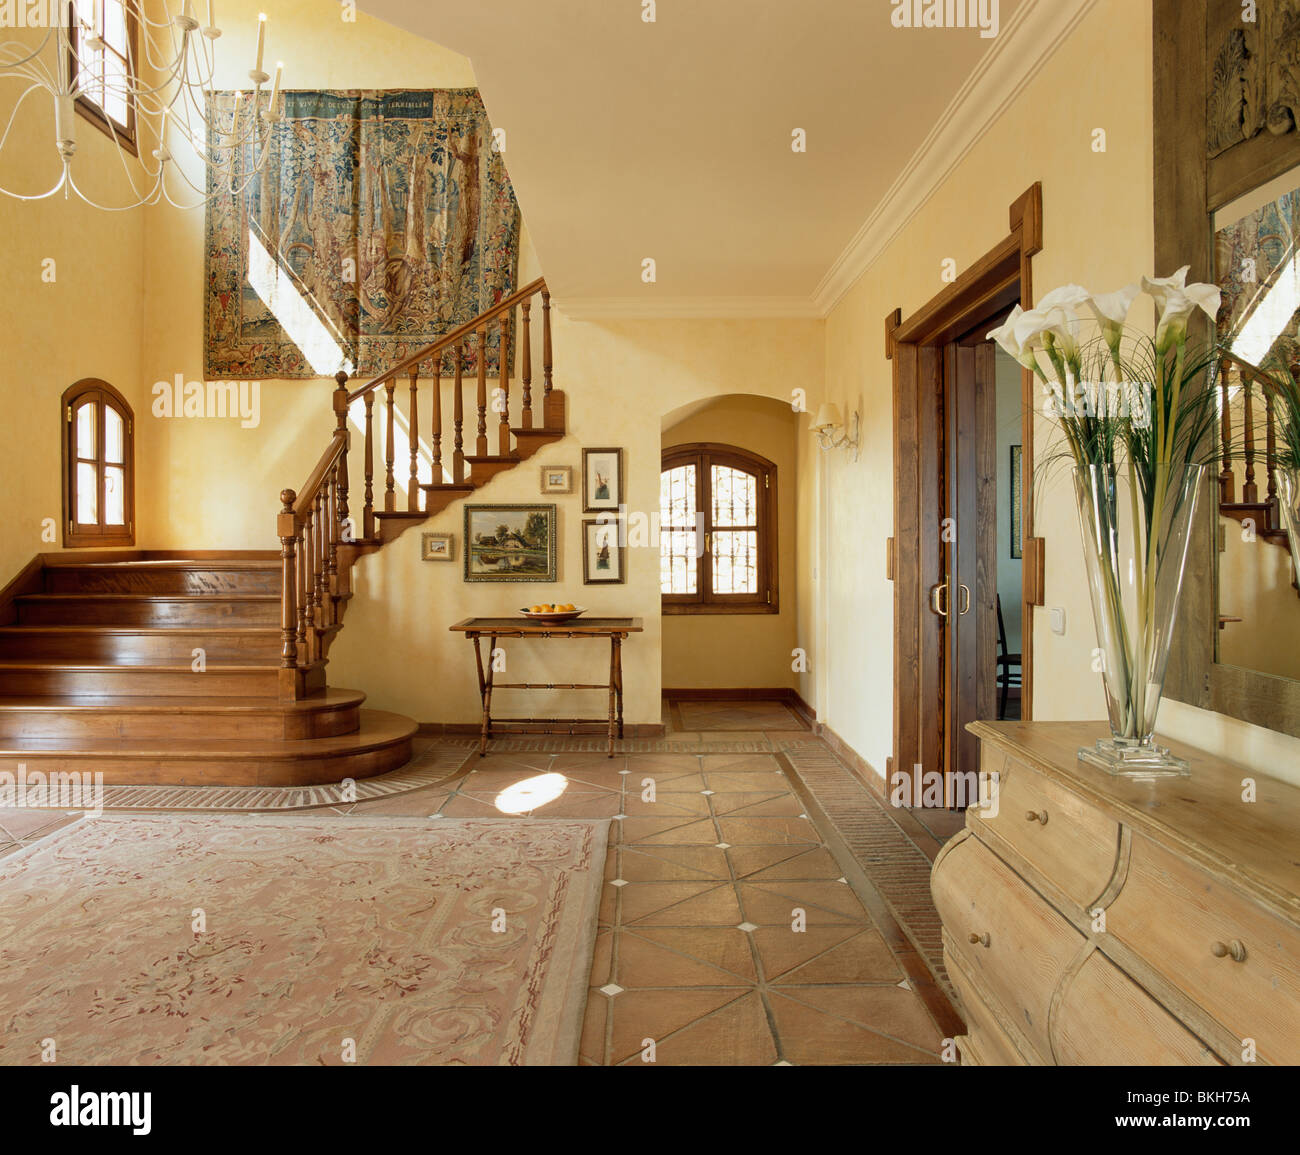 Patterned rug on terracotta floor tiles in large traditional patterned rug on terracotta floor tiles in large traditional spanish hall with tapestry on wall above wooden staircase dailygadgetfo Choice Image